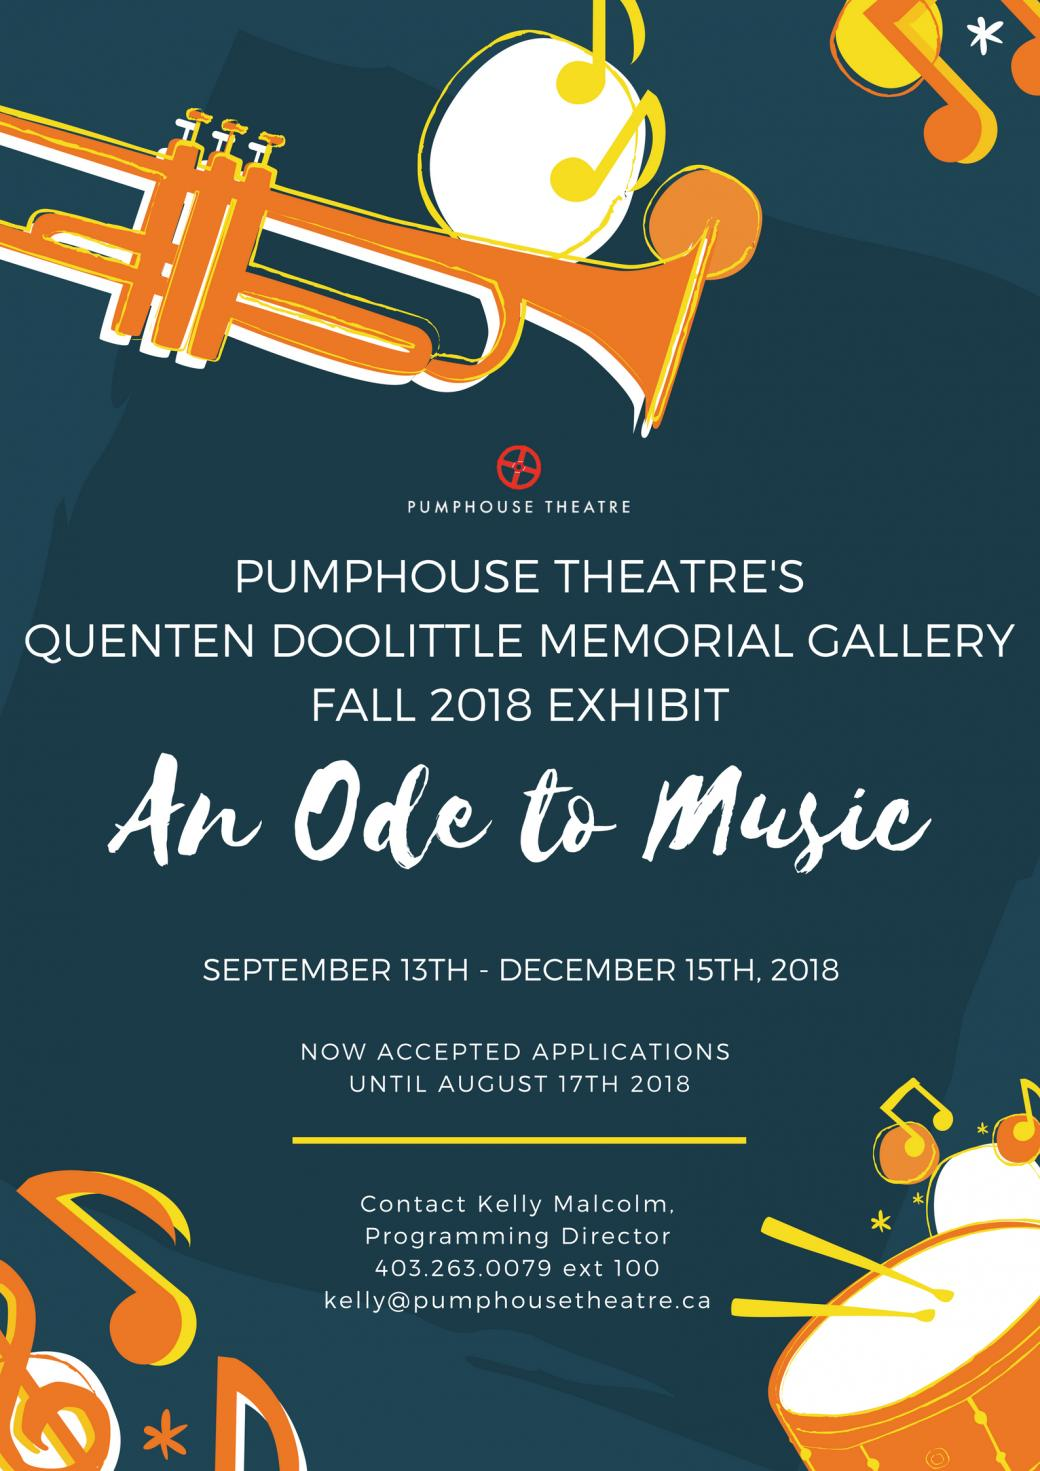 Pumphouse Theatre Fall 2018 Gallery -- Submissions are Now Open!